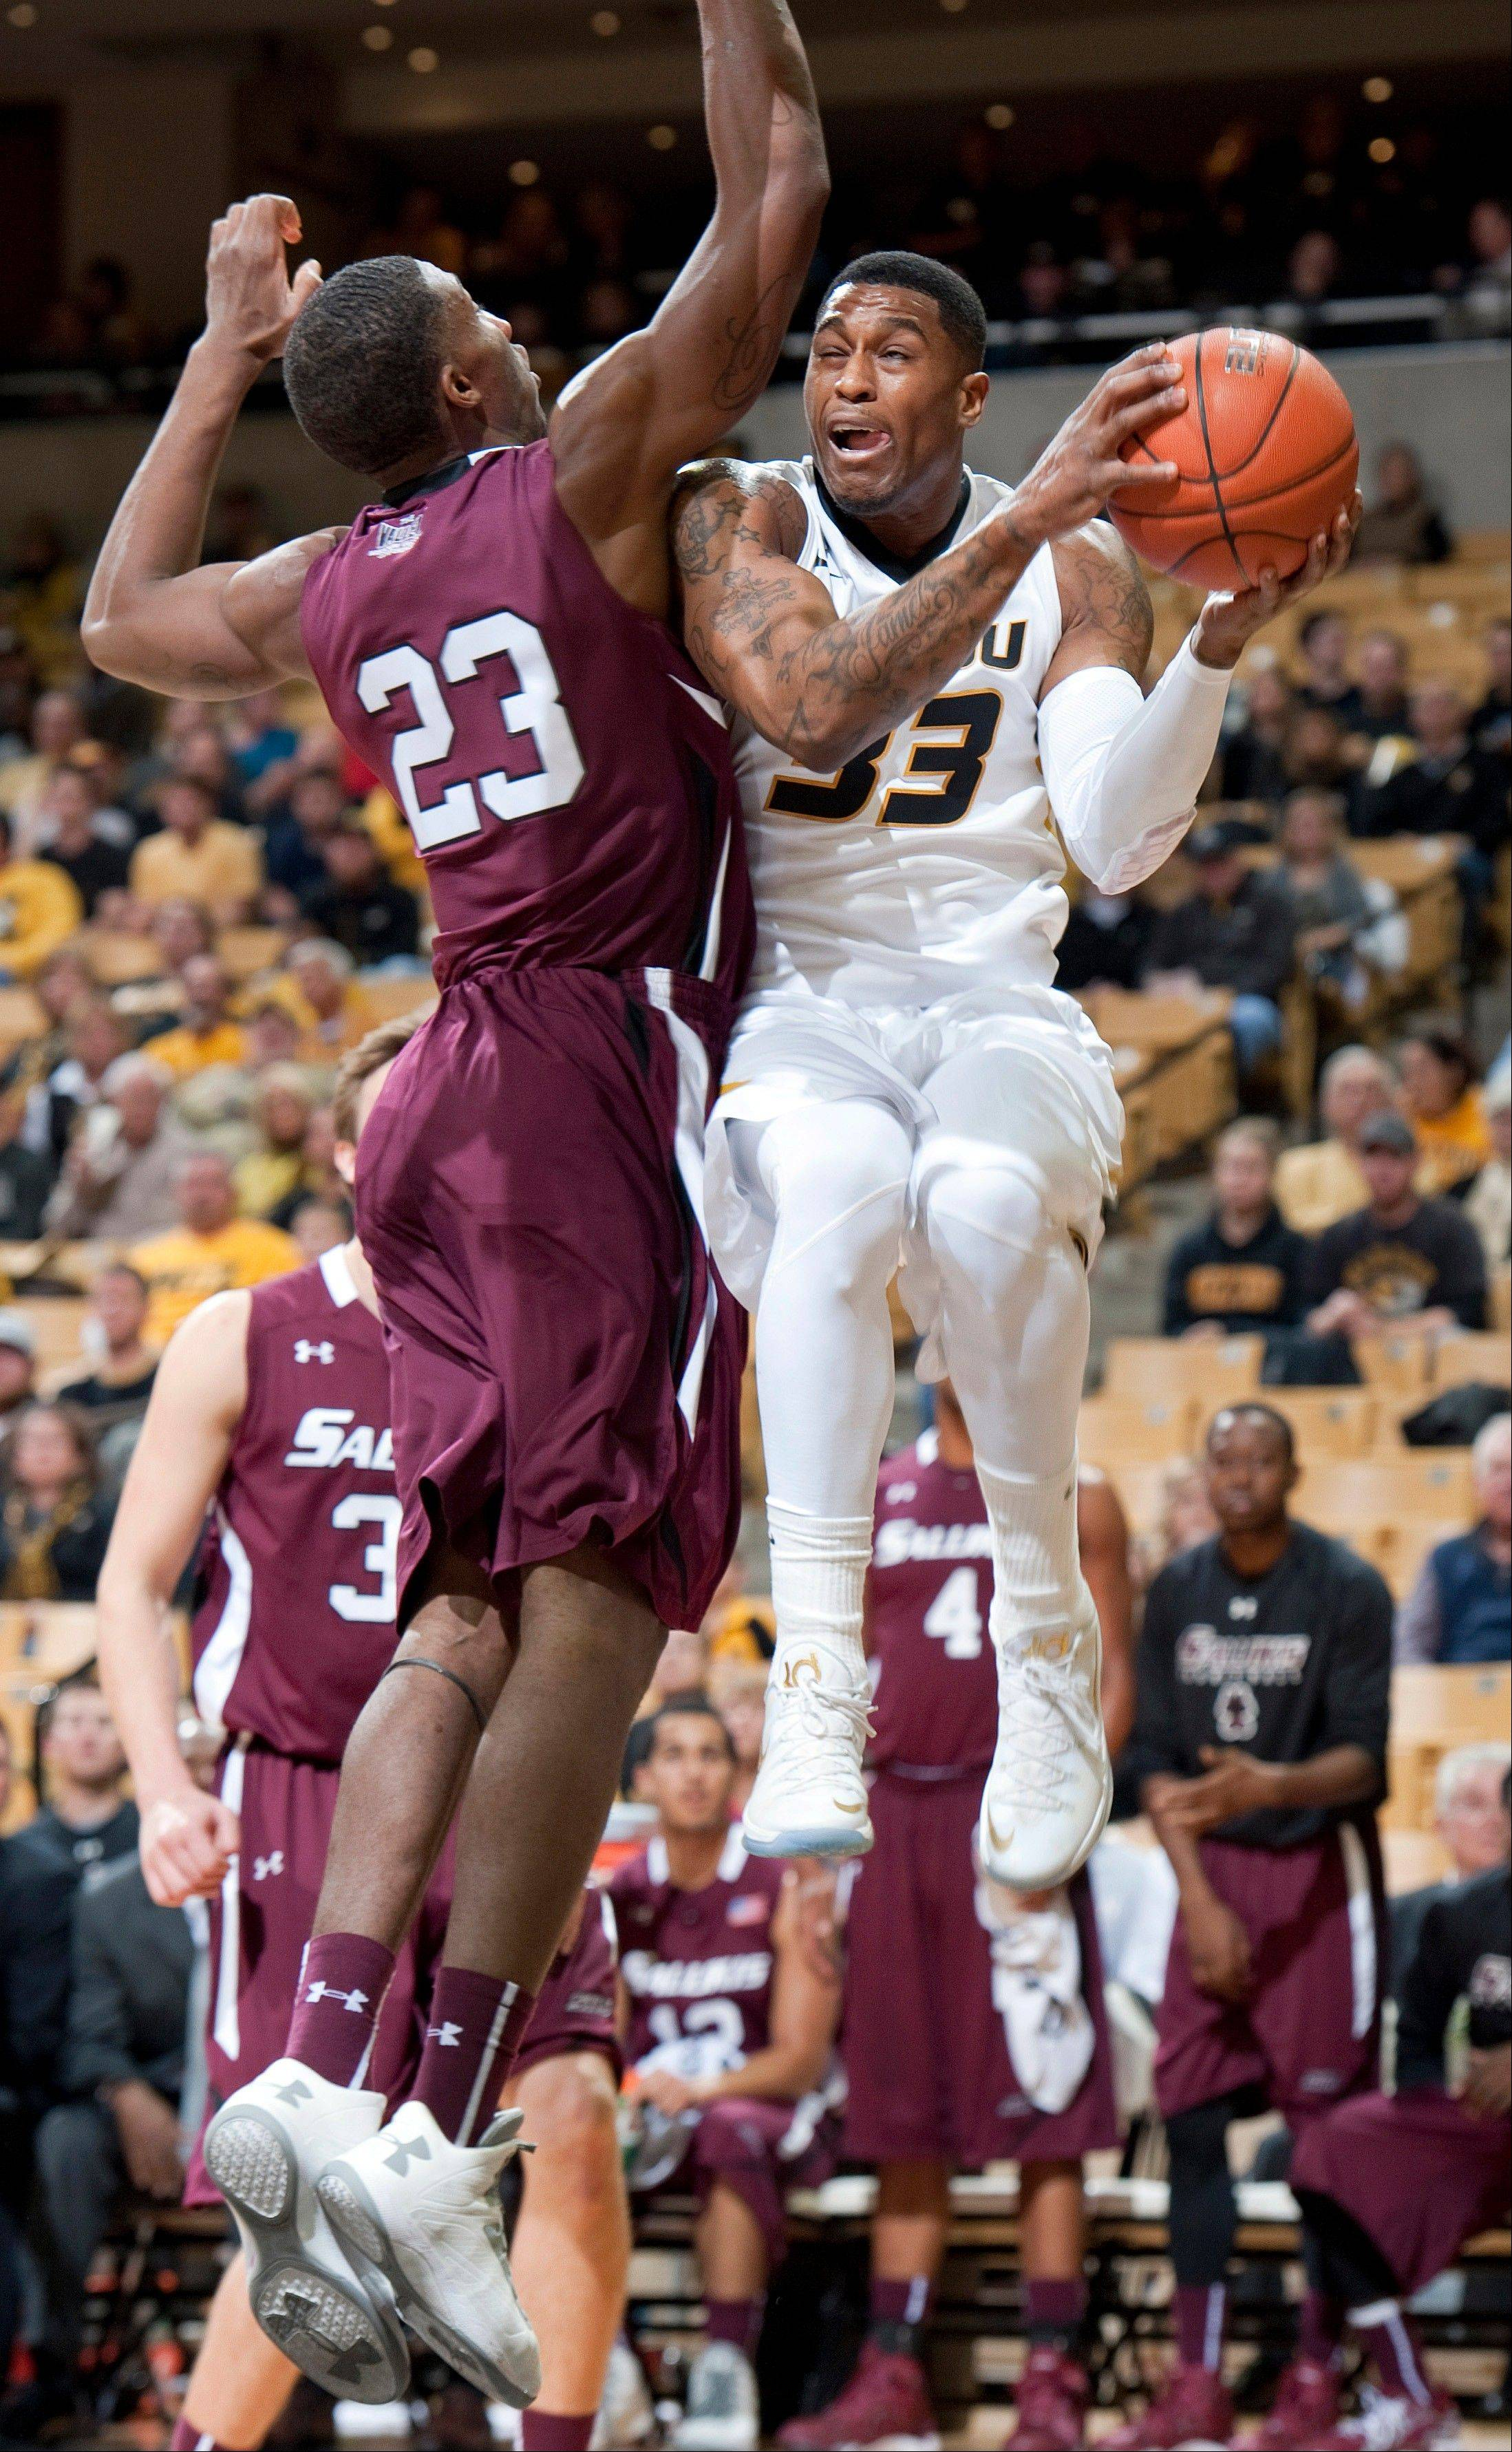 Missouri's Earnest Ross, right, is fouled by Southern Illinois' Bola Olaniyan as he shoots during the first half of Tuesday's game in Columbia, Mo.